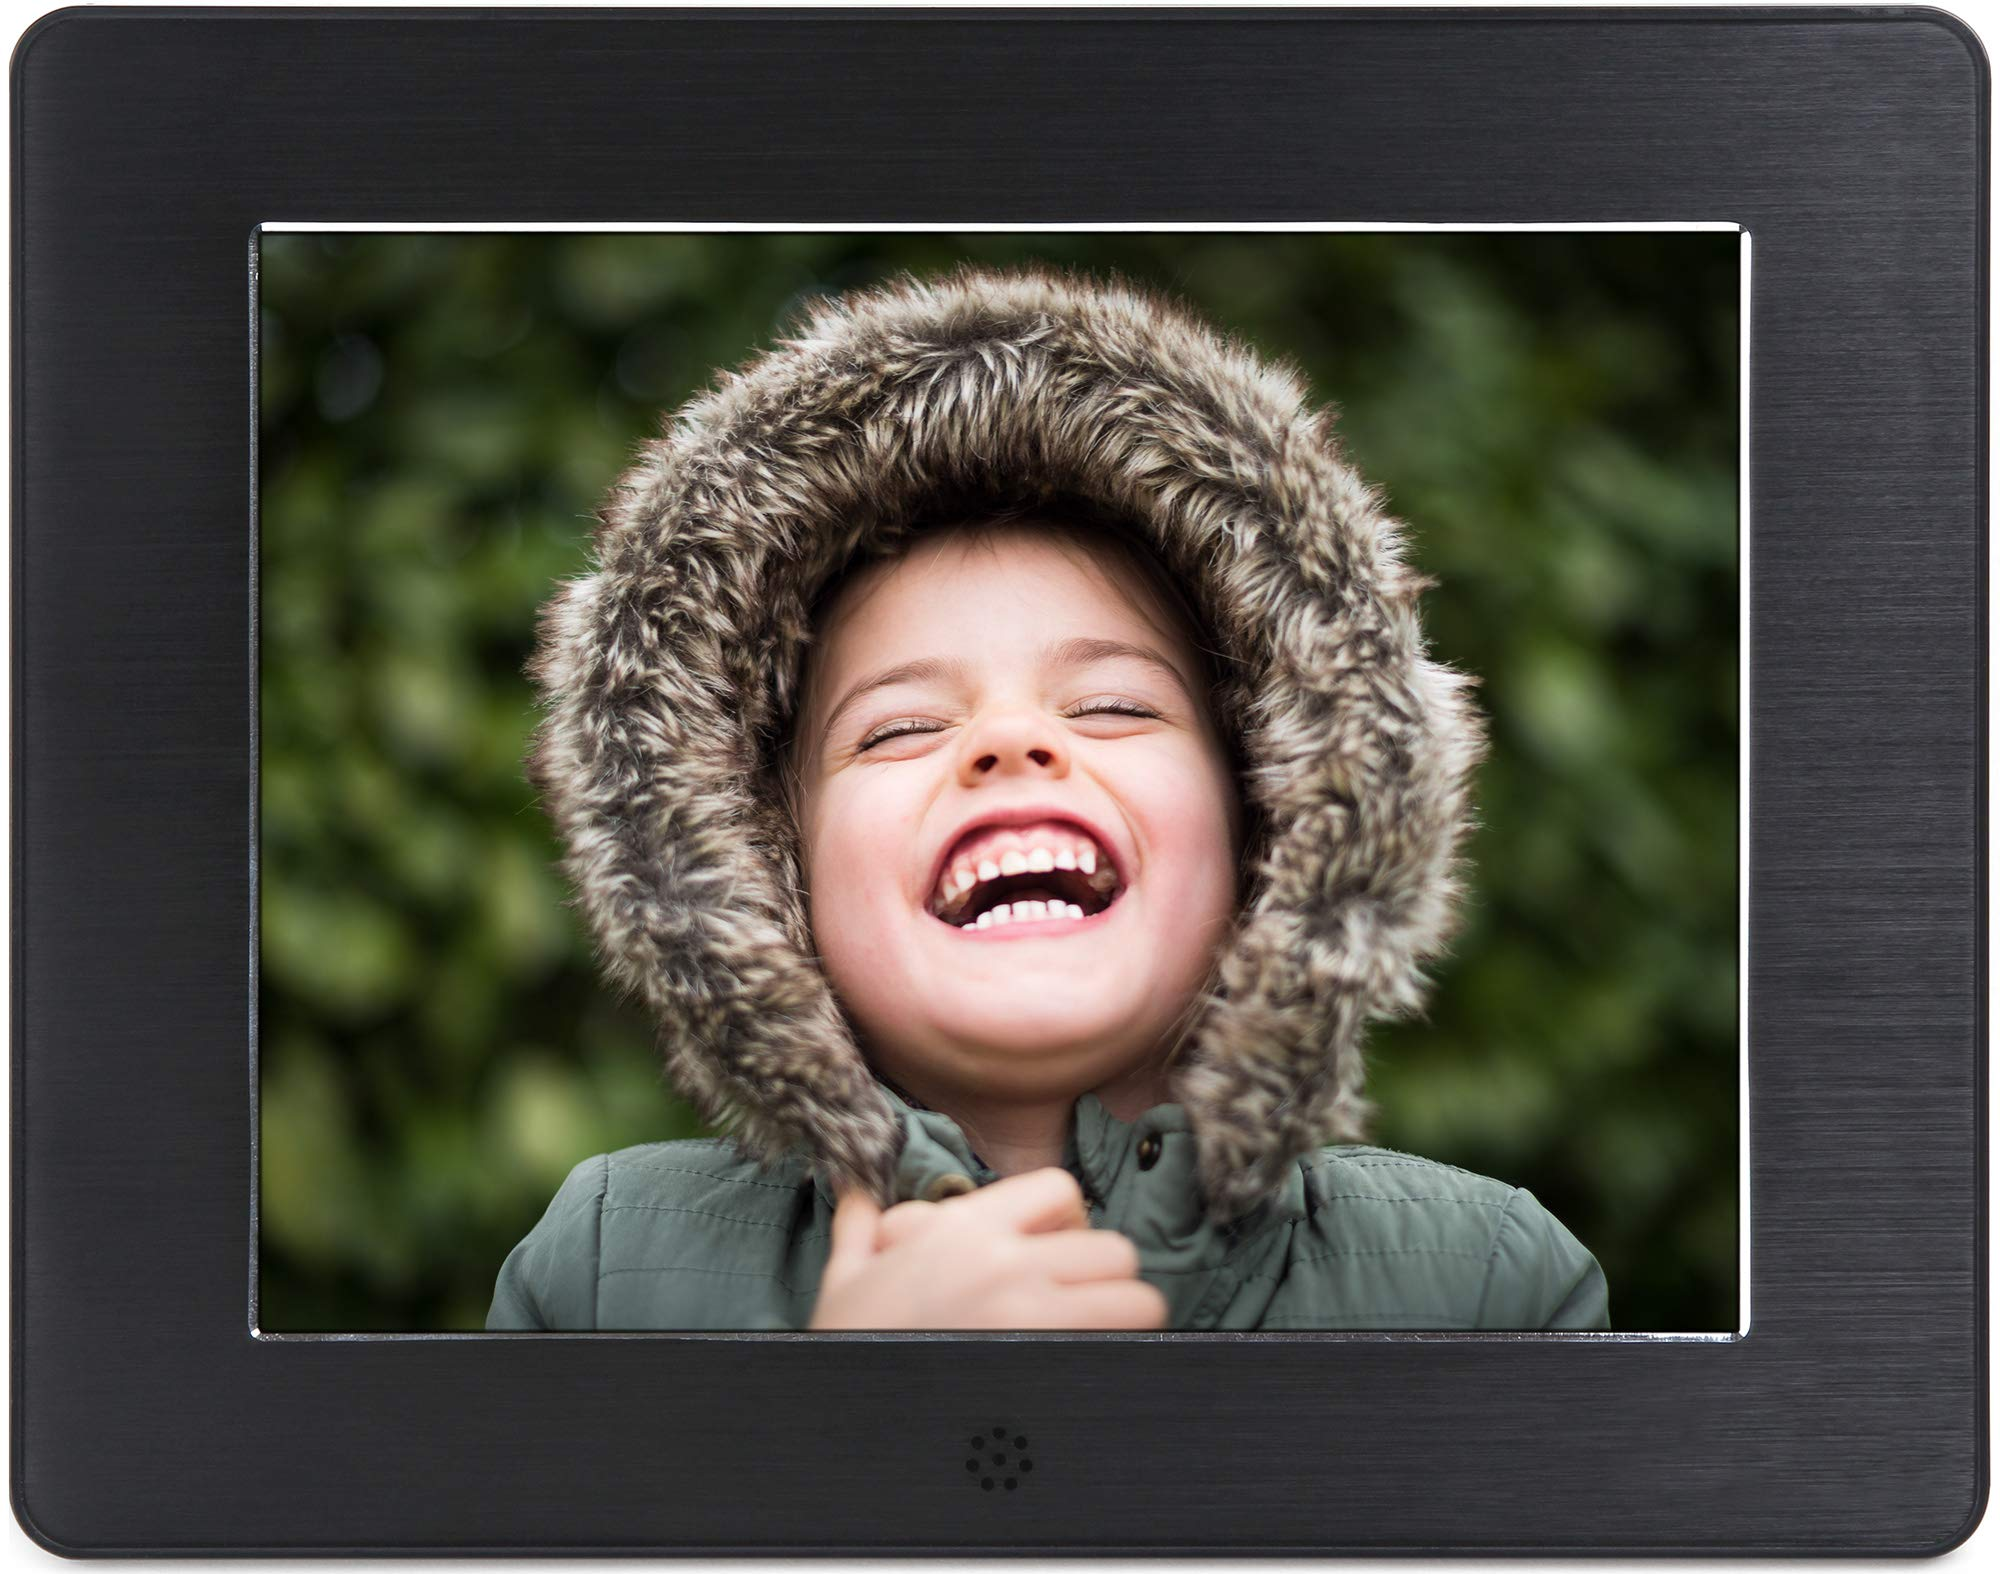 Micca 8-Inch Digital Photo Frame High Resolution LCD, MP3 Music 1080P HD Video Playback, Auto On/Off Timer (Model: N8, Replaces M808z) by Micca